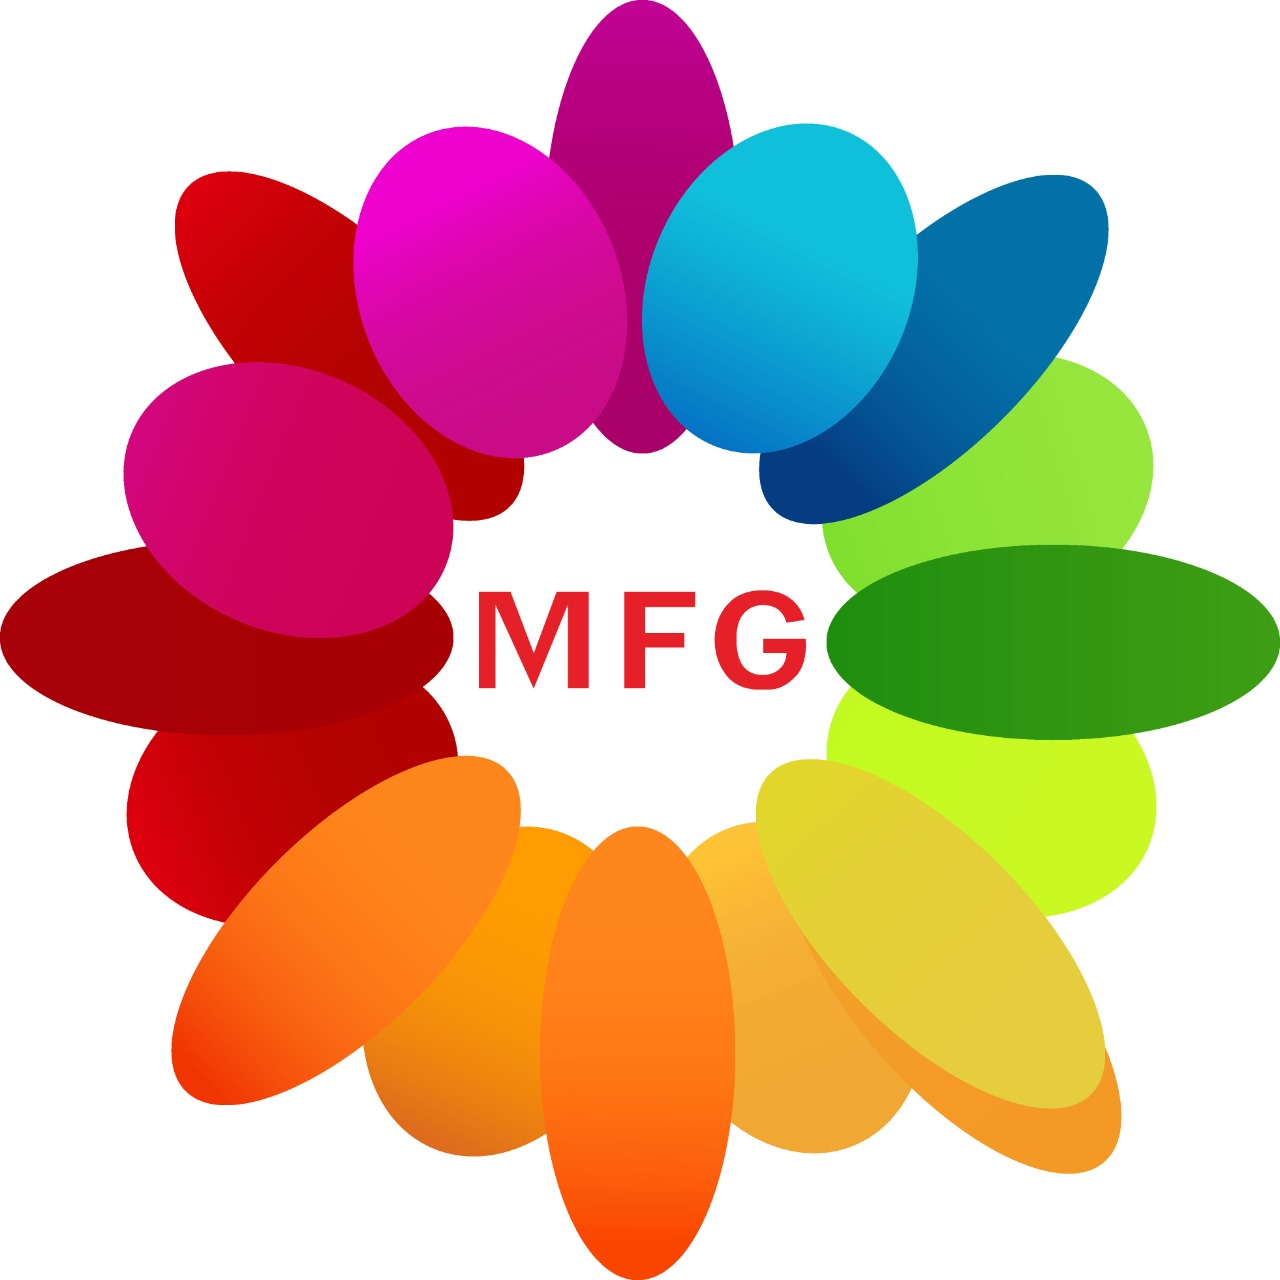 Bunch of 12 red roses with half kg dryfruits